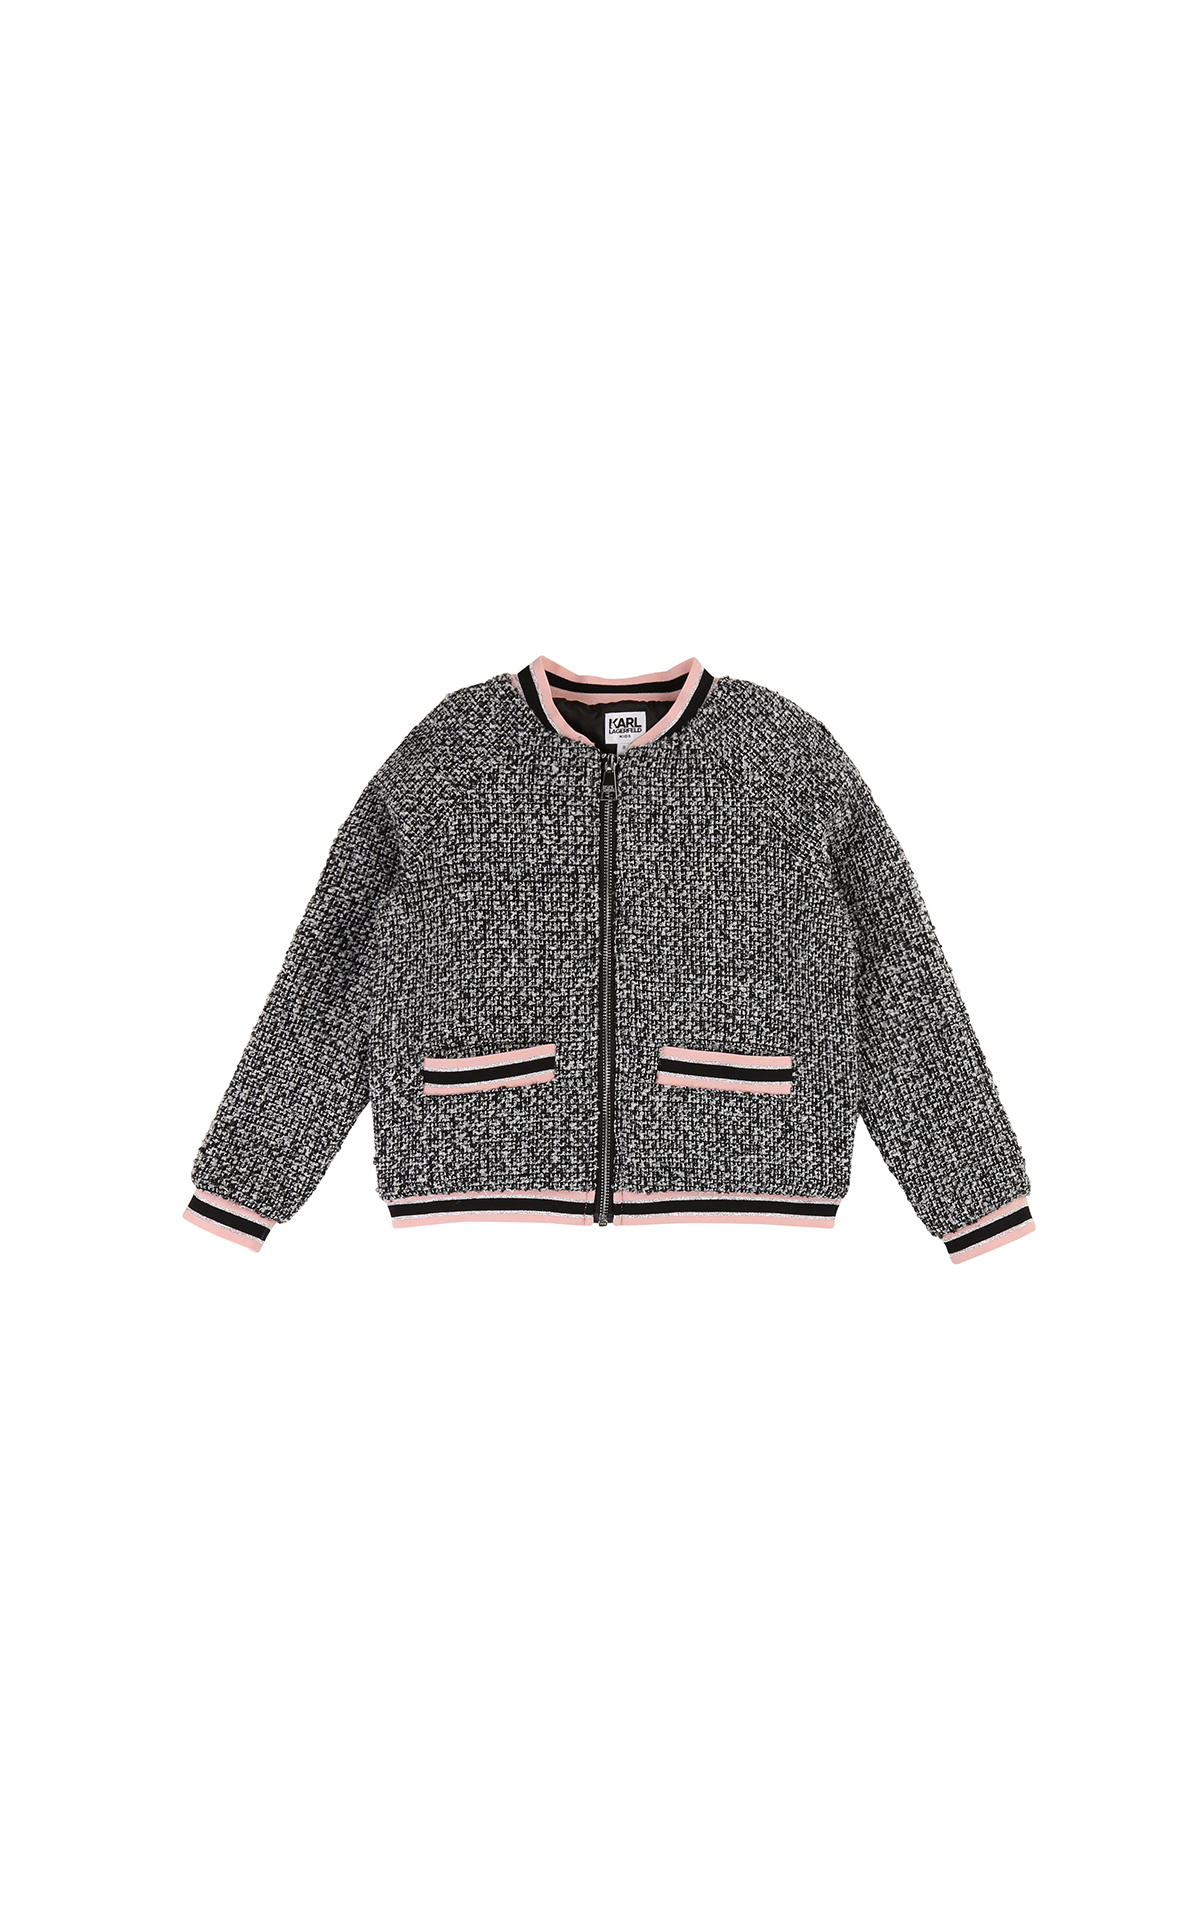 Kids around Chloe Kids Karl Lagarfeld grey jacket with pink details la vallée village